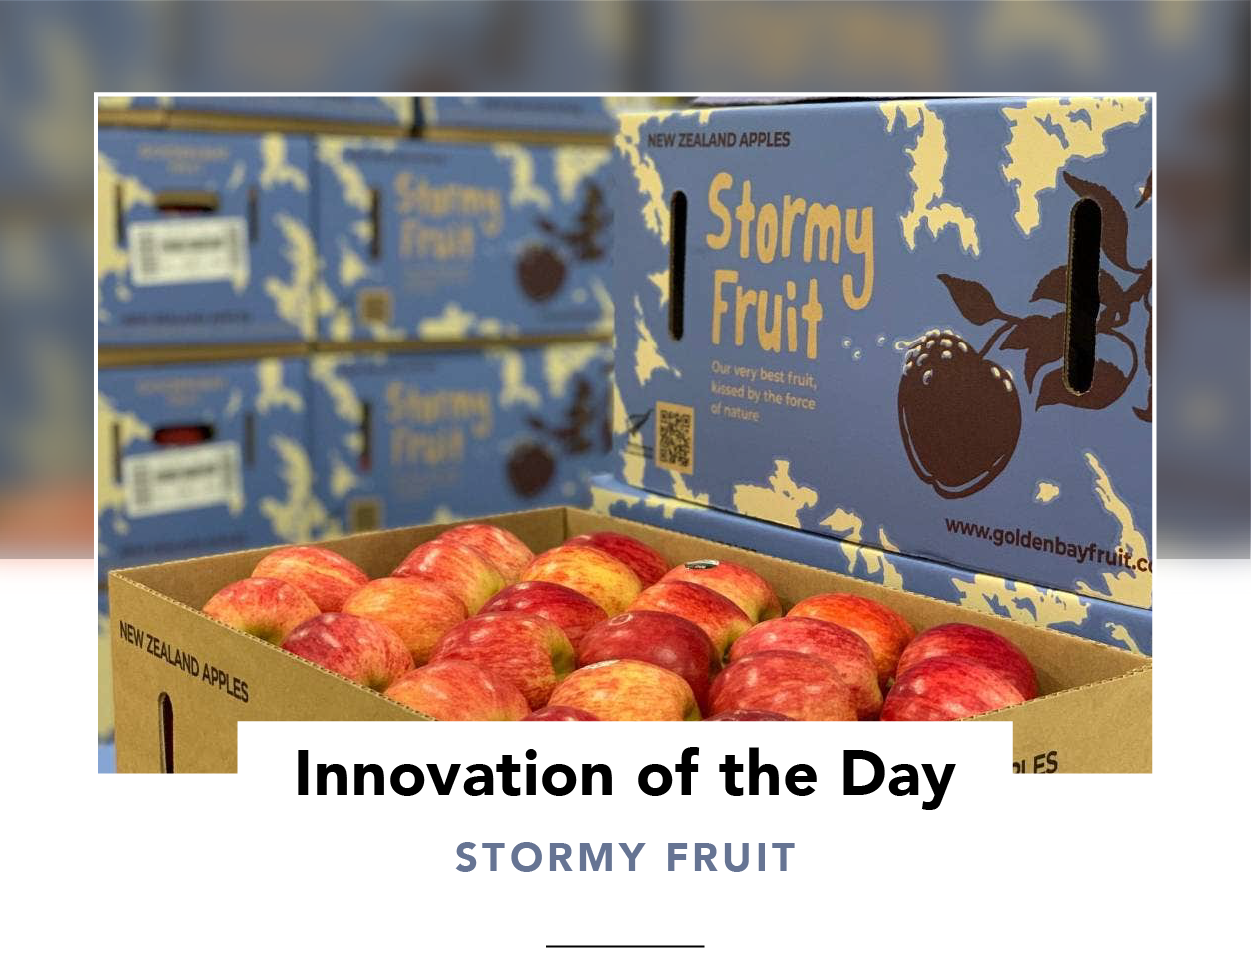 An open box of apples next to a lid showing 'Stormy Fruit' branding